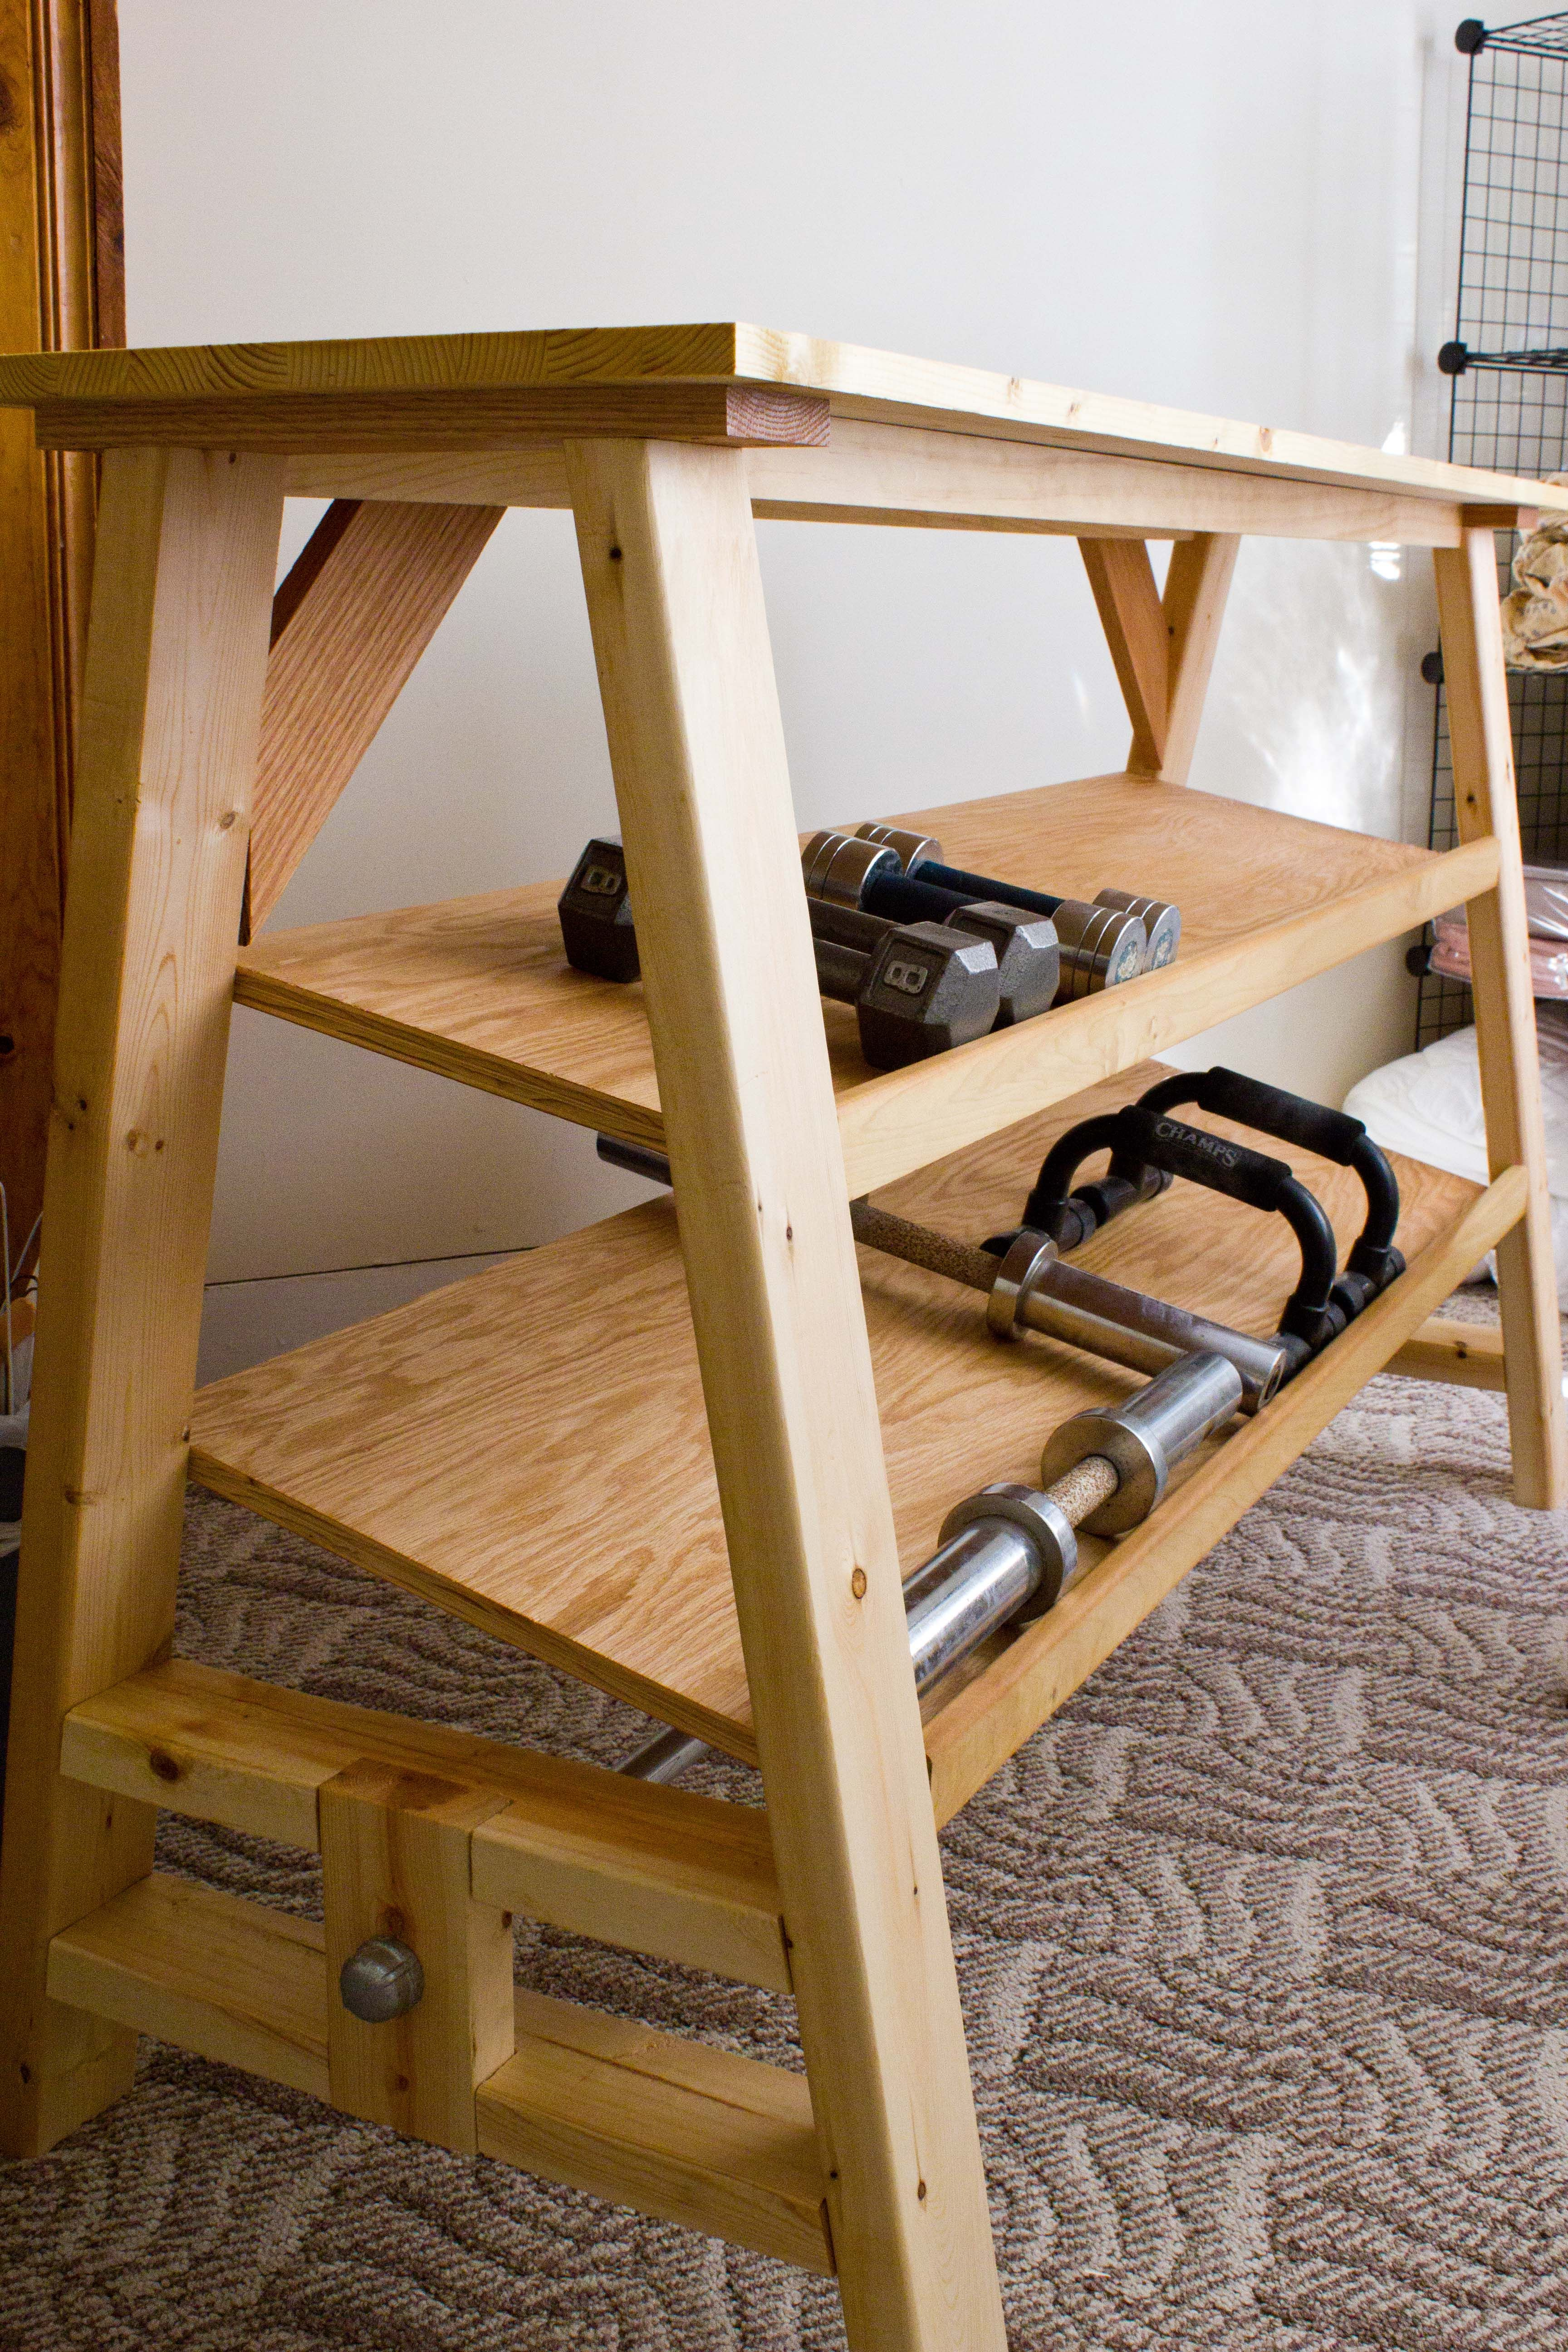 Build Diy Dumbbell Weight Rack Plans From Wood